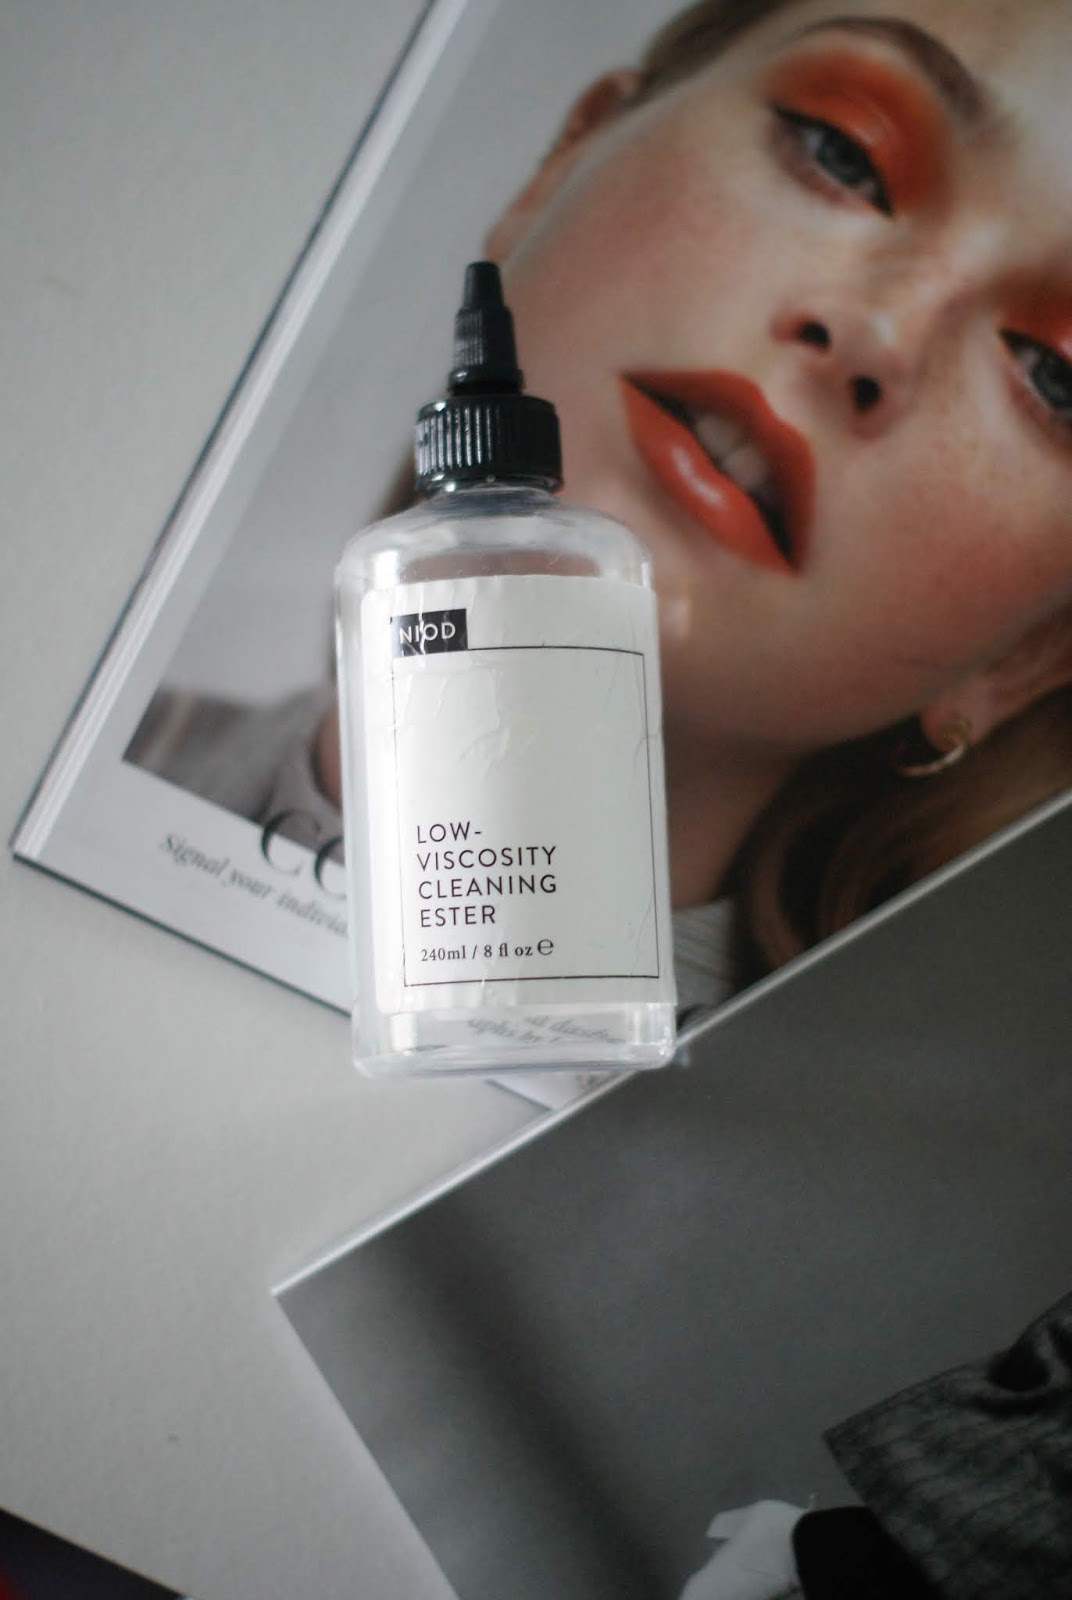 Low-Viscosity Cleaning Ester/ NIOD